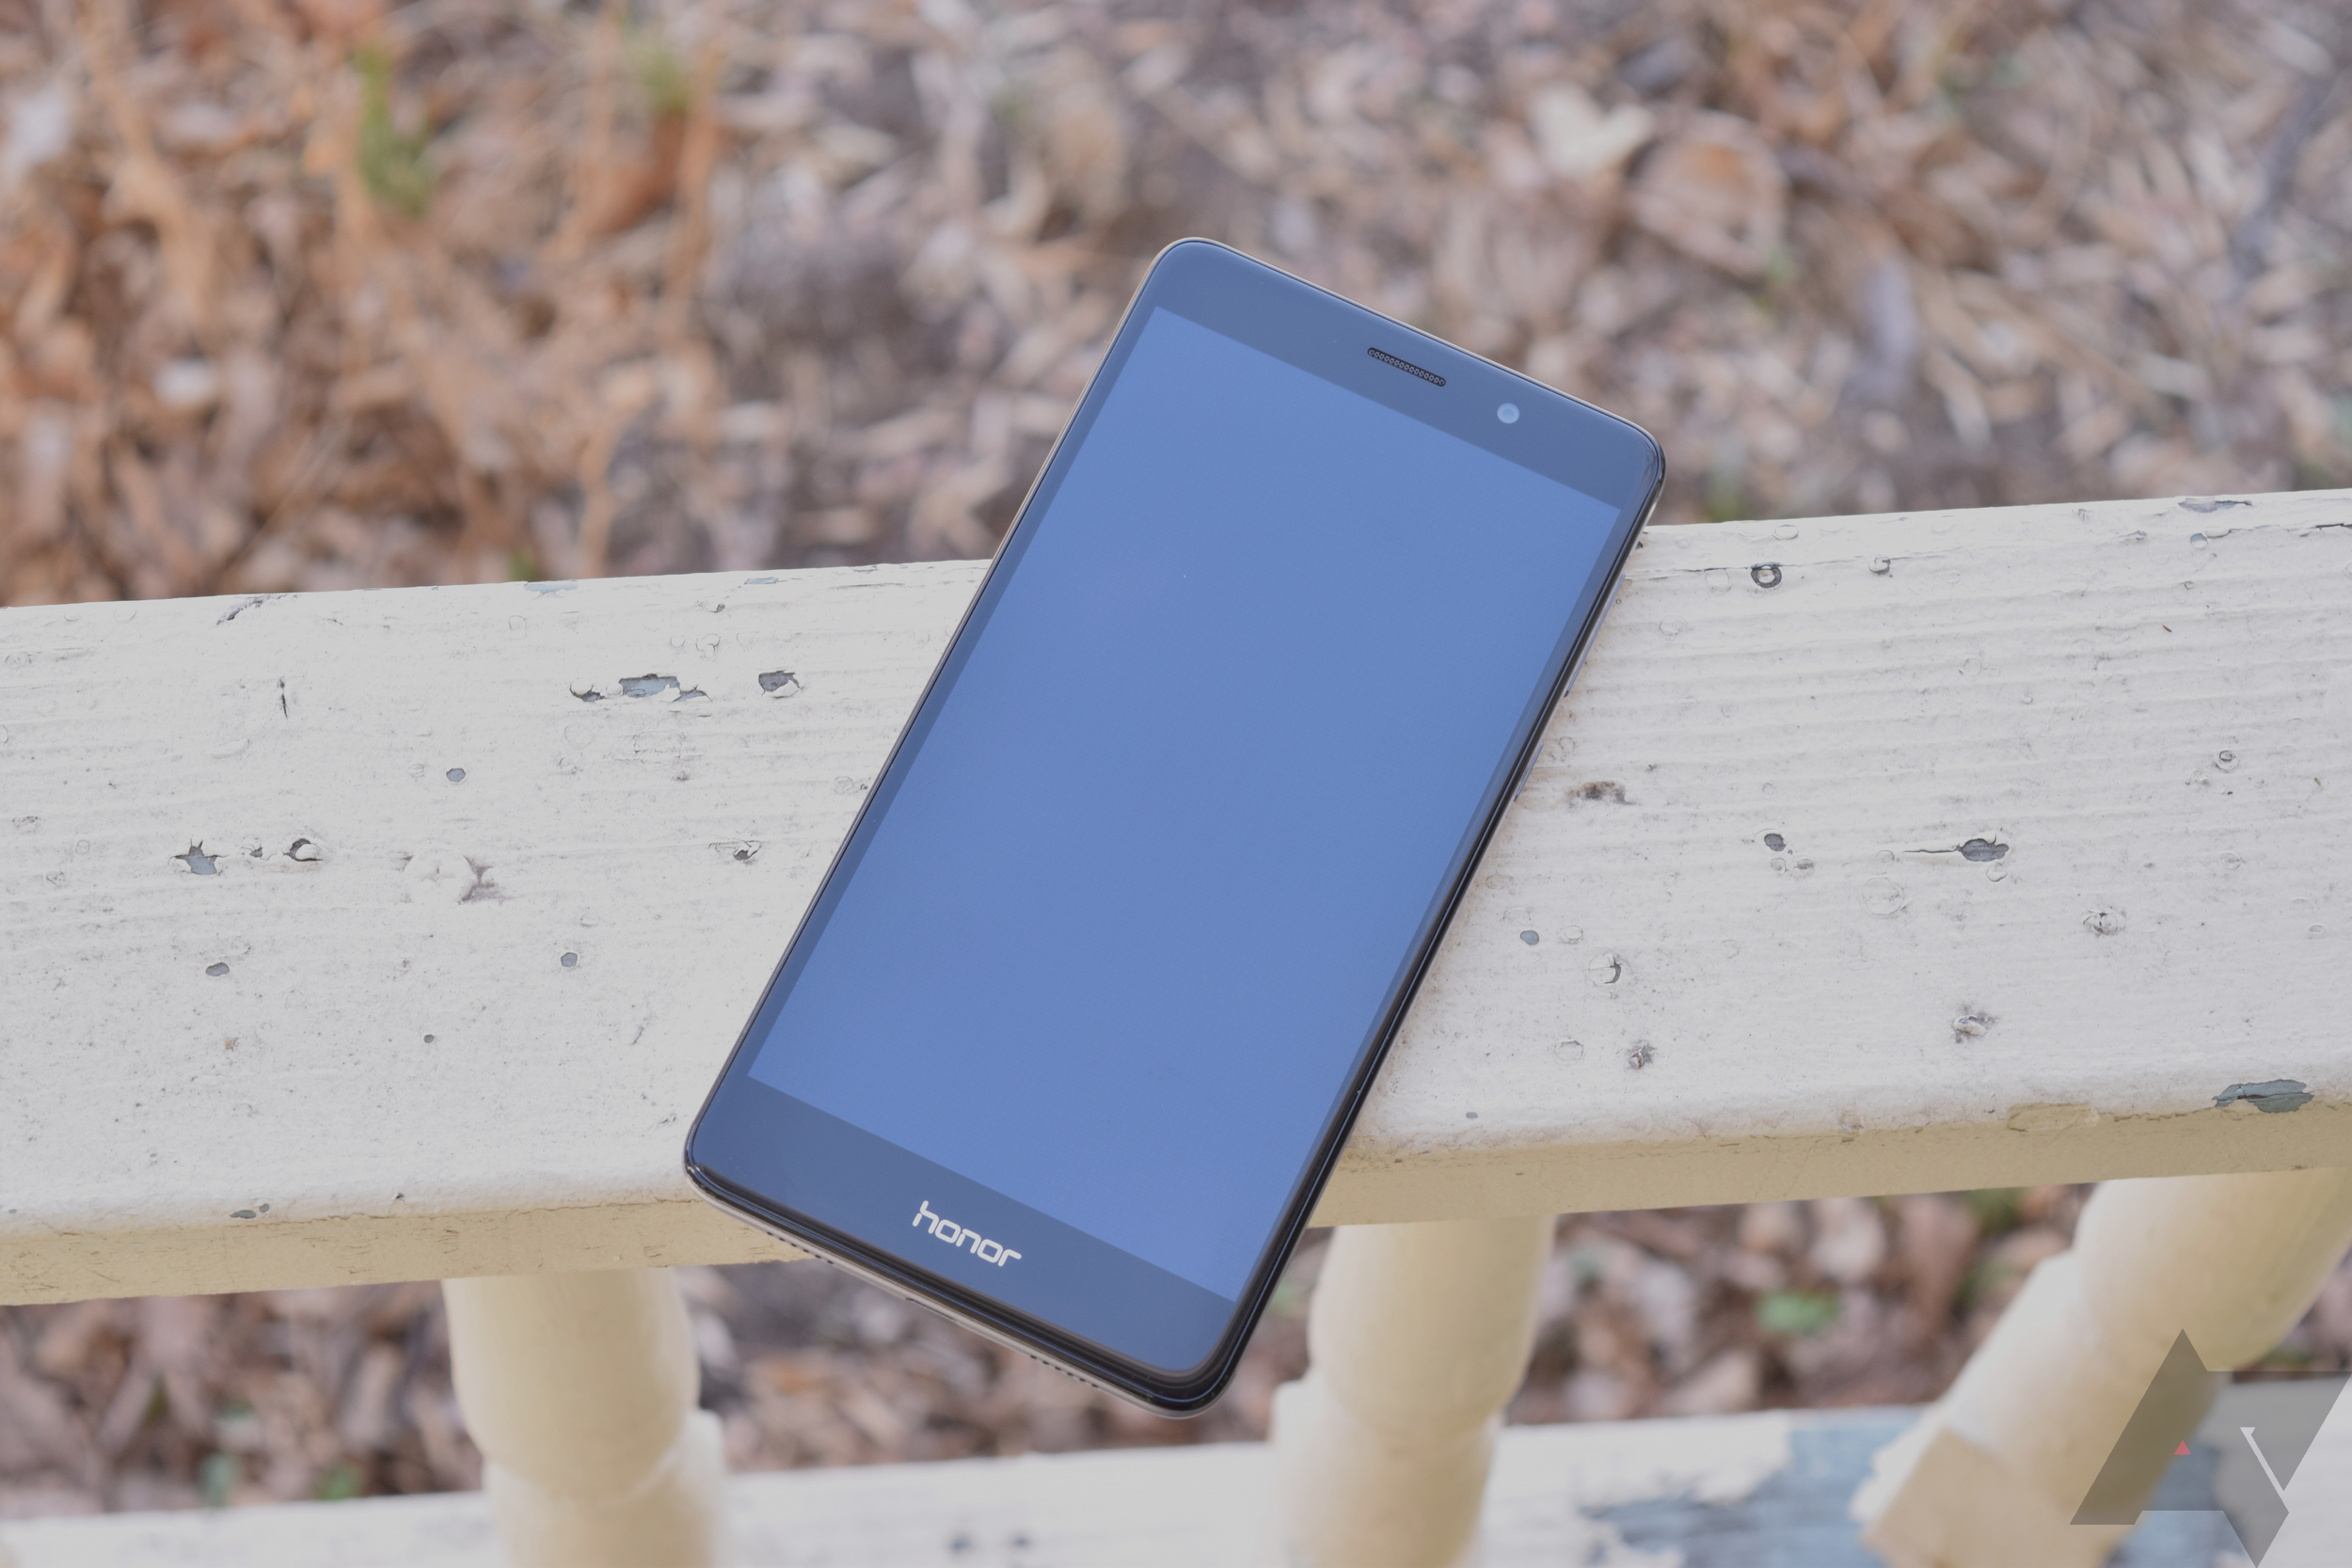 TWRP adds support for the Honor 6X, Wileyfox Swift 2X, and more